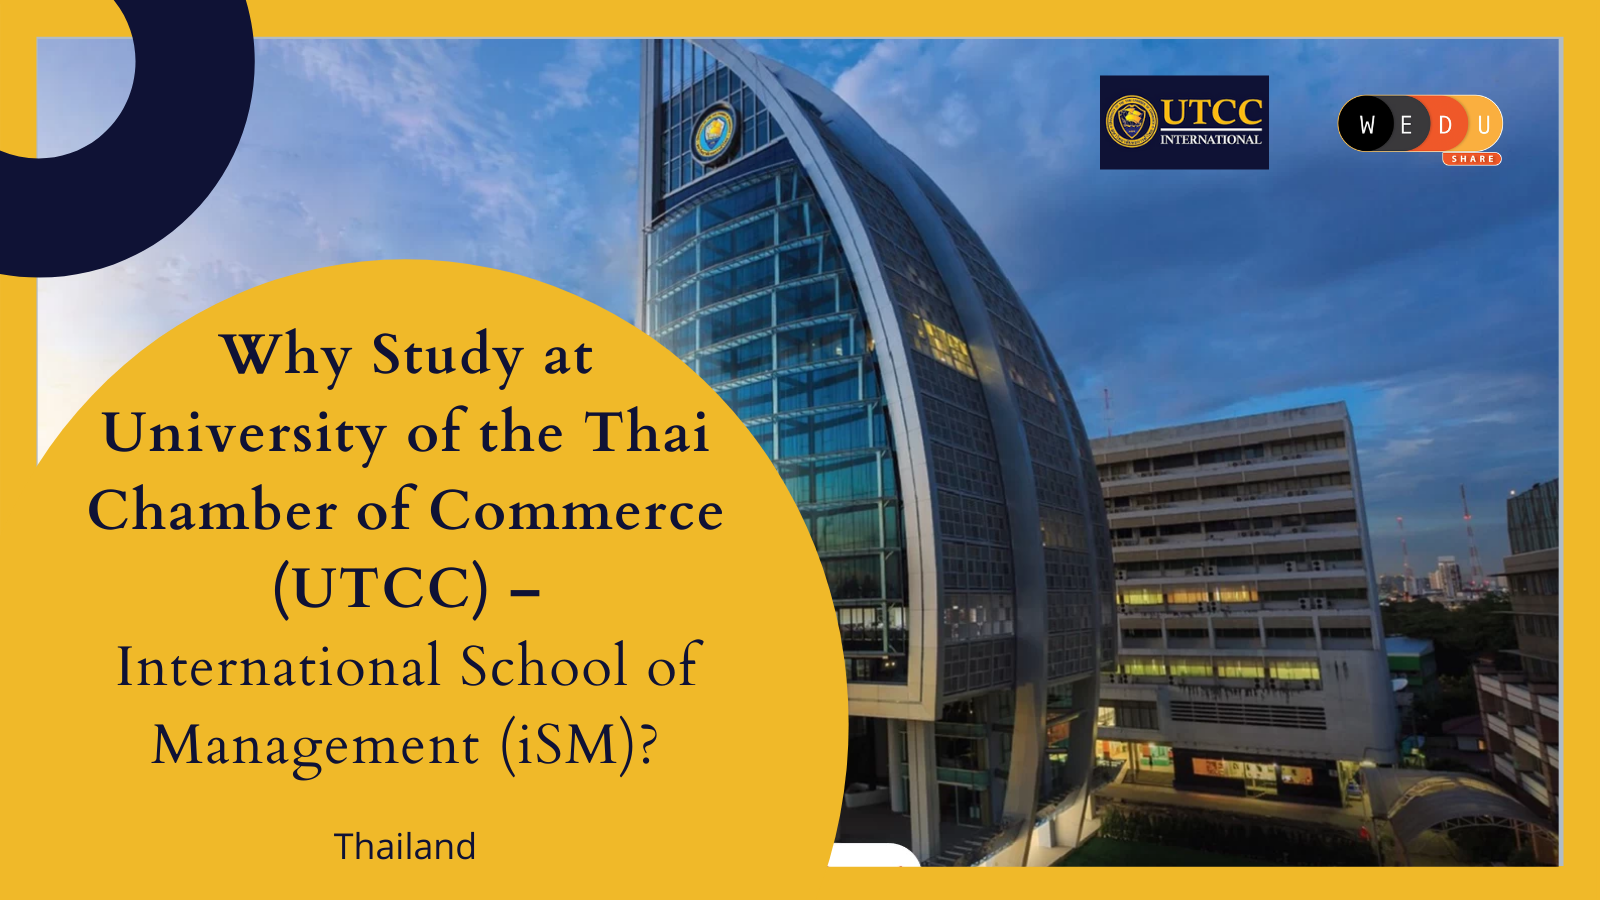 University of the Thai Chamber of Commerce (UTCC) – International School of Management (iSM)